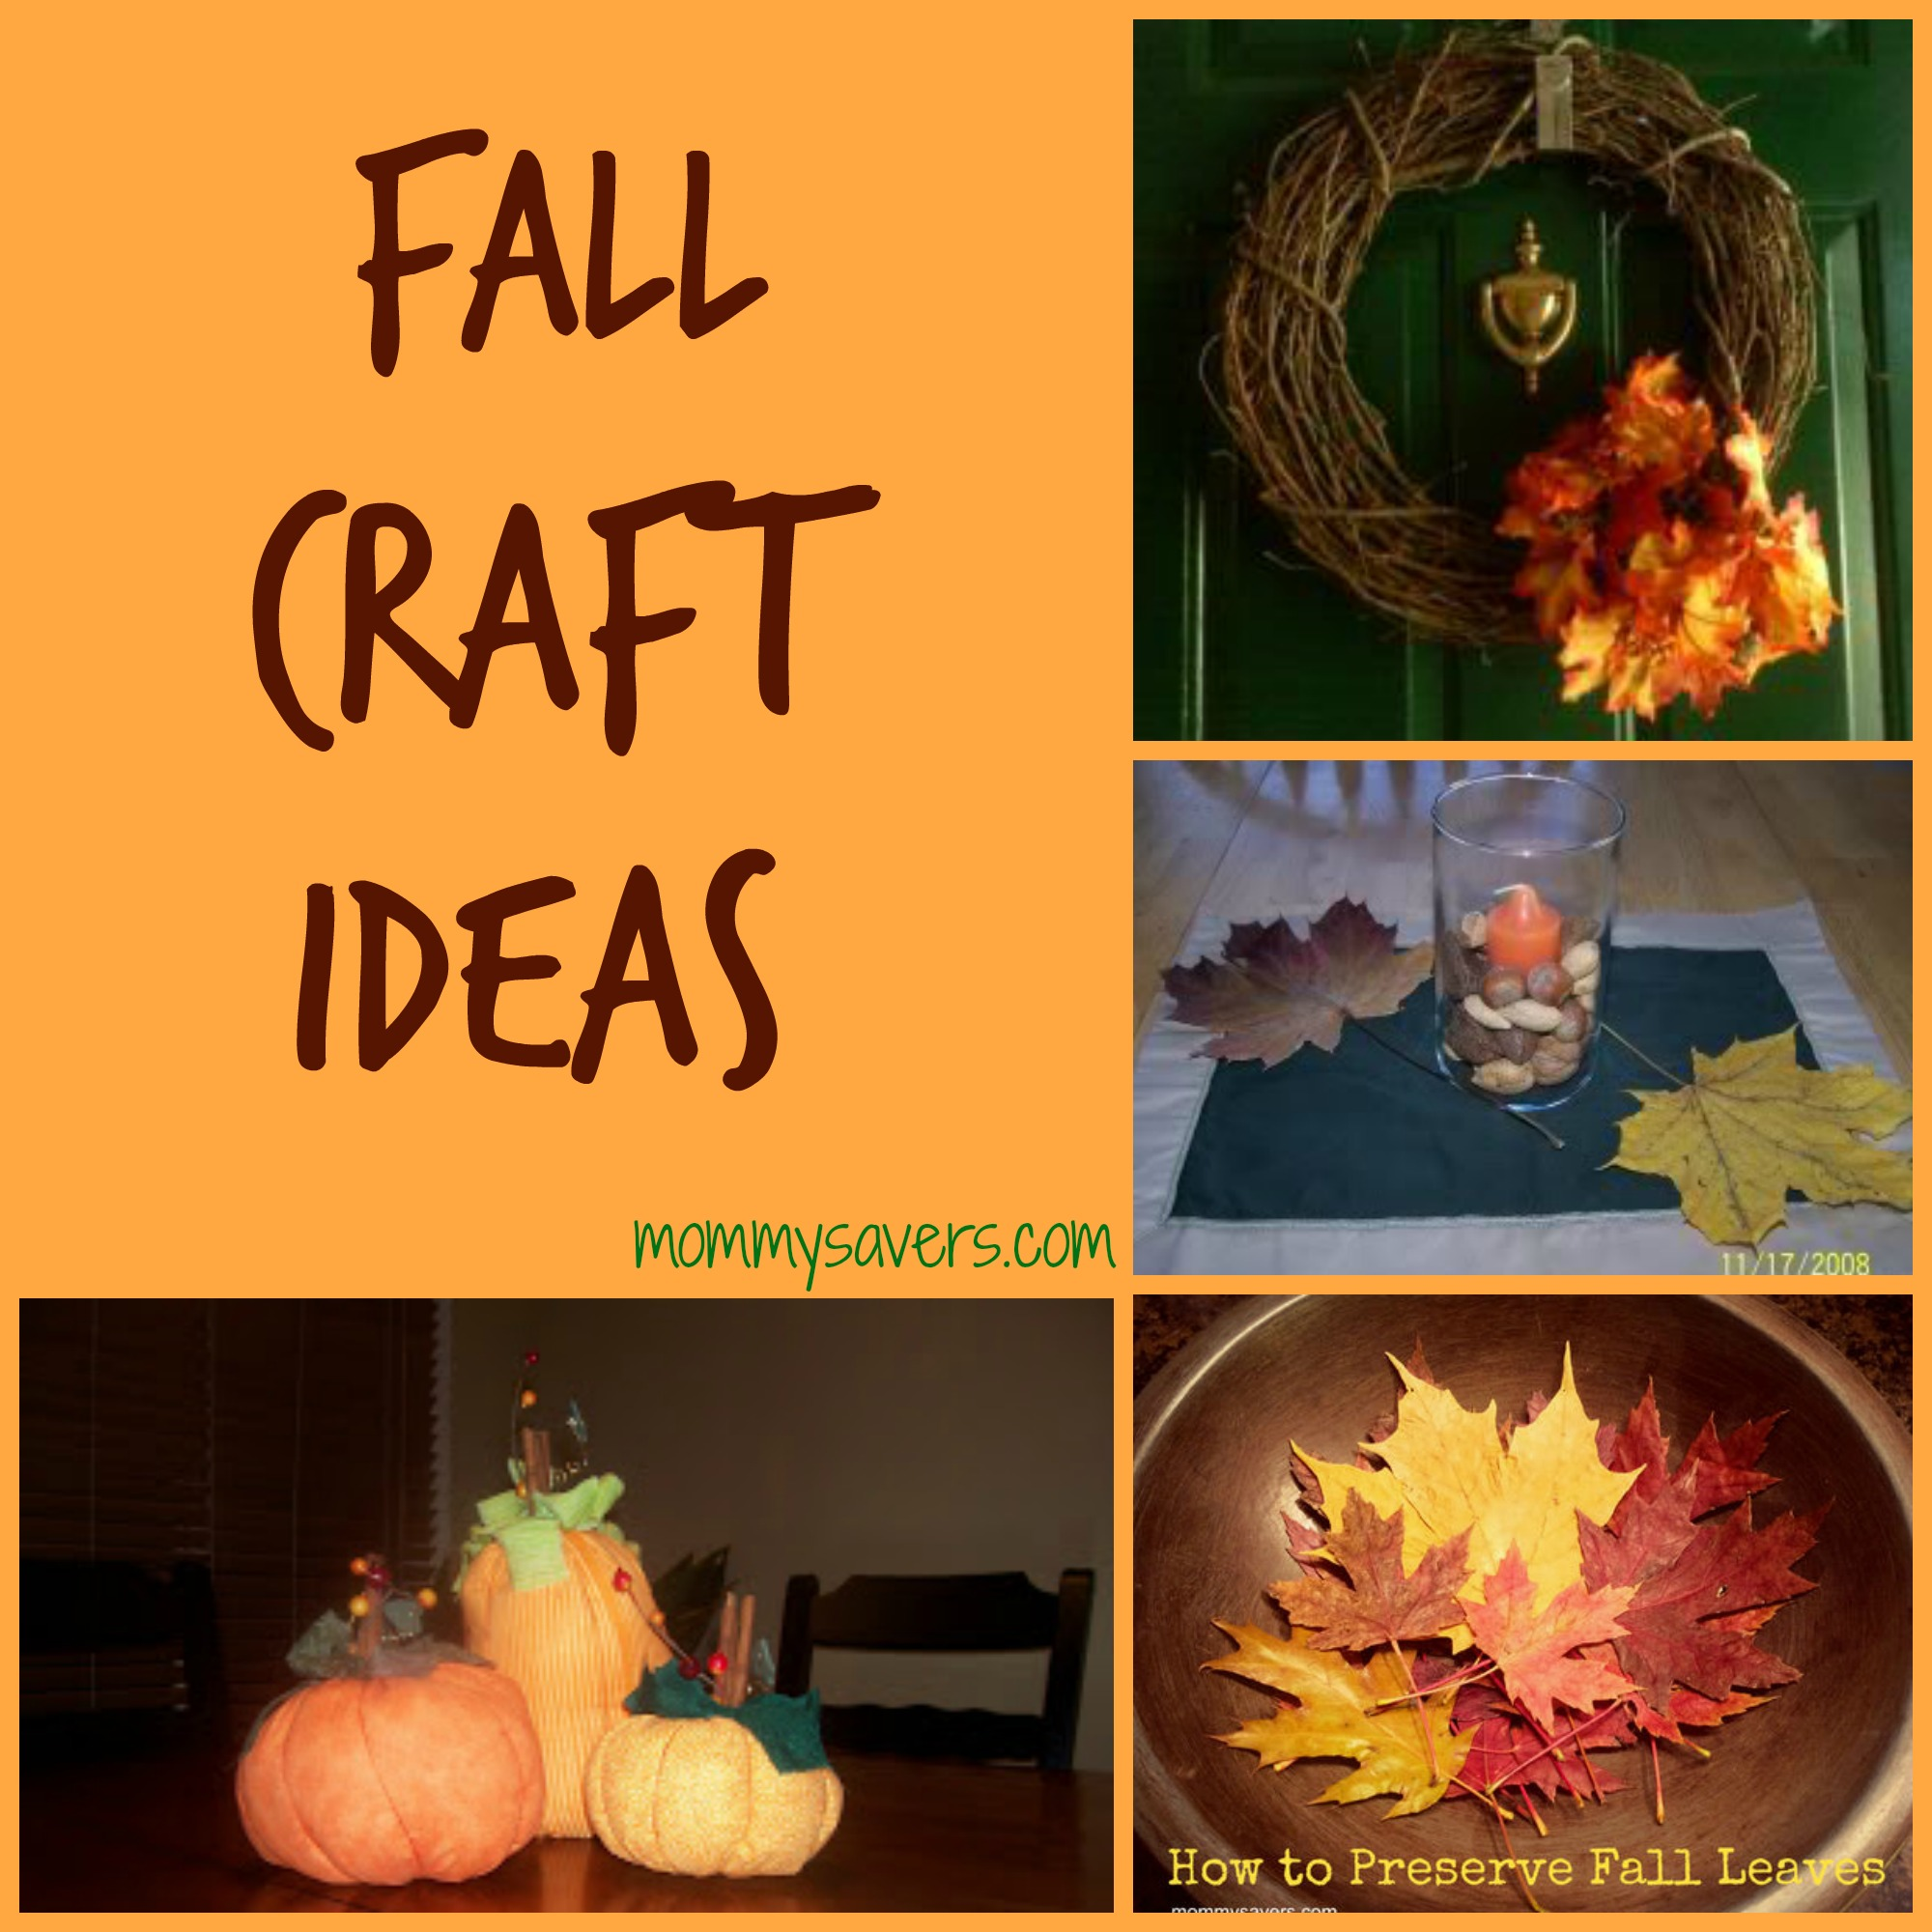 Fall Craft Ideas 10 Simple Crafts